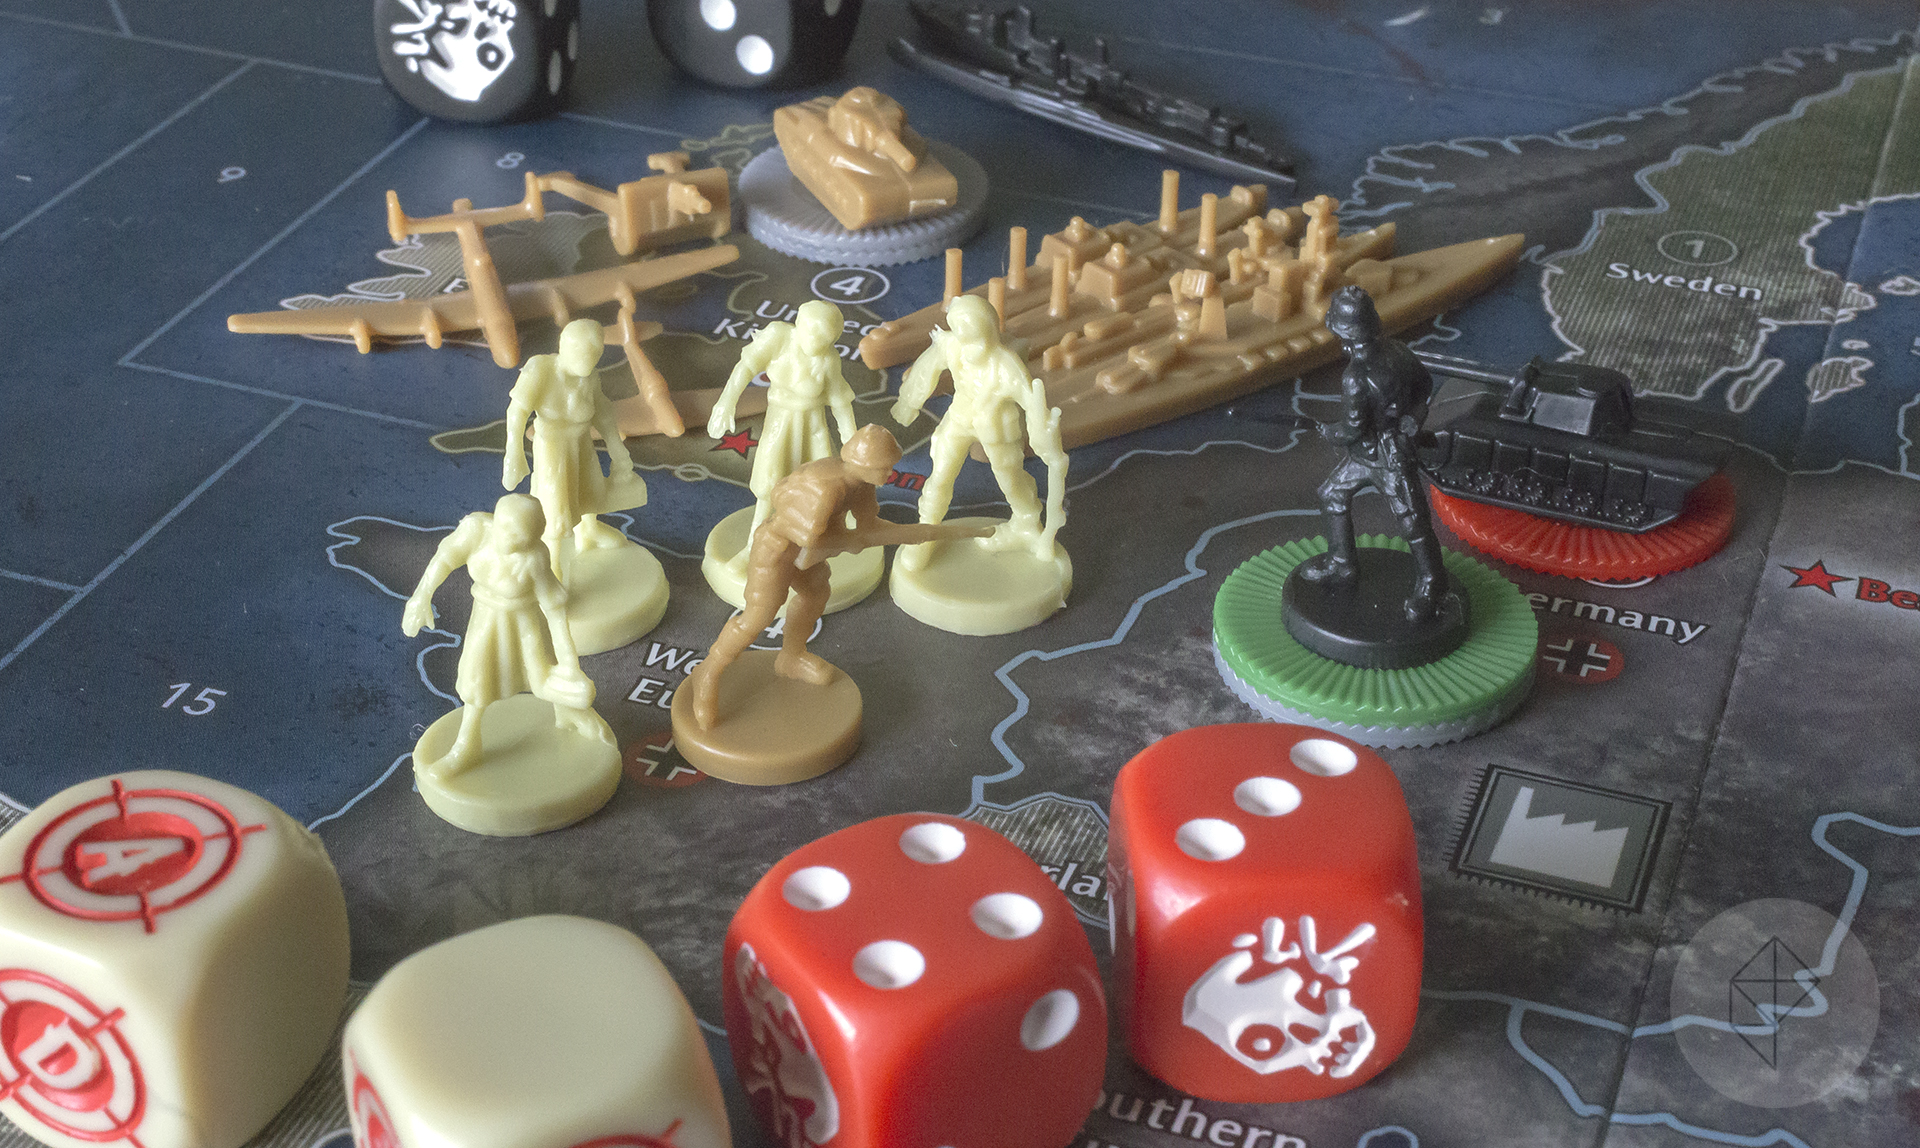 Axis & Allies & Zombies reinvents the classic board game with one small tweak